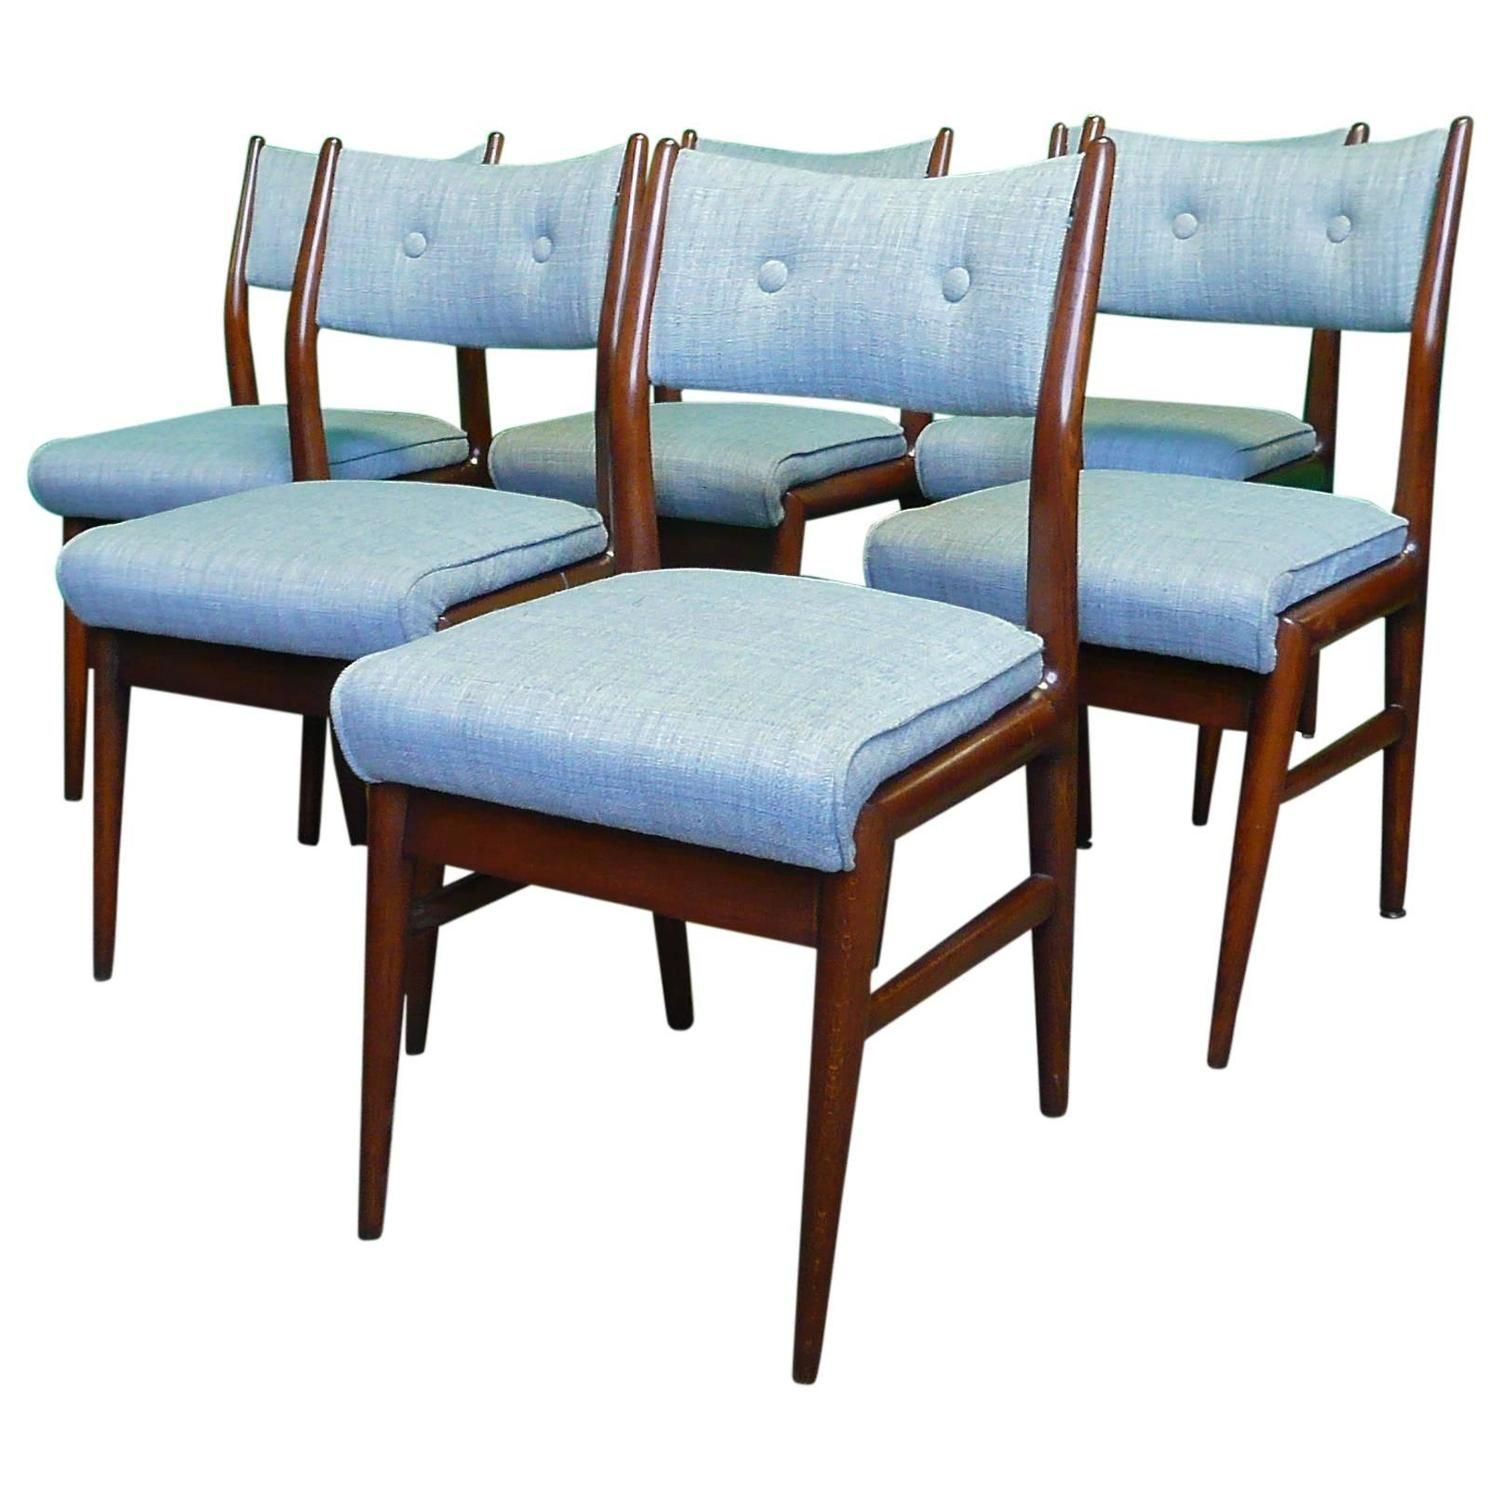 Midcentury Modern Dining Chairs  Modern Dining Chairs Dining Fascinating Mid Century Dining Room Chairs Decorating Inspiration